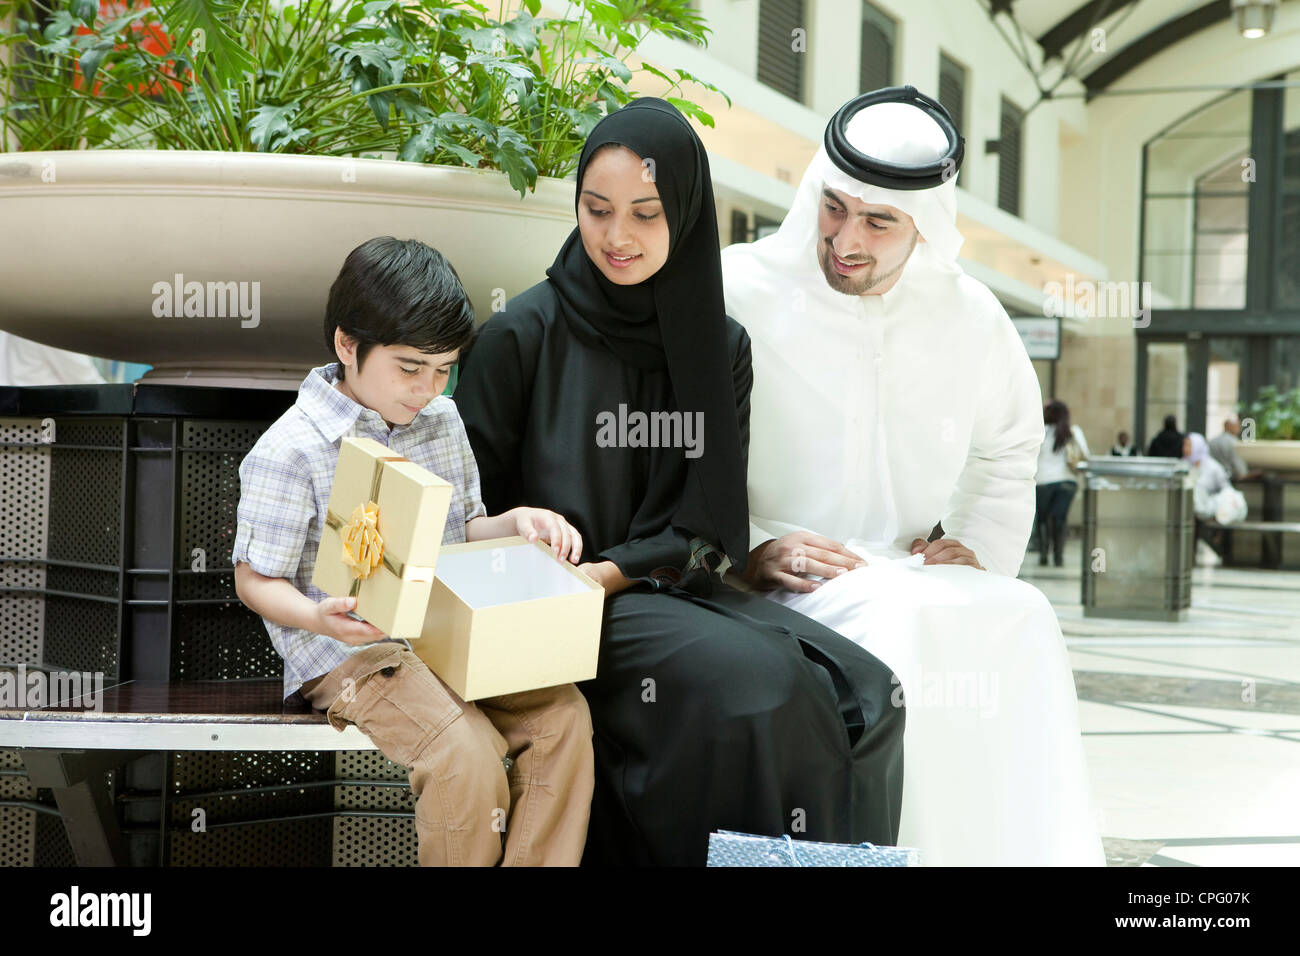 Arab family sitting at the shopping mall, parents giving gift to their son. - Stock Image